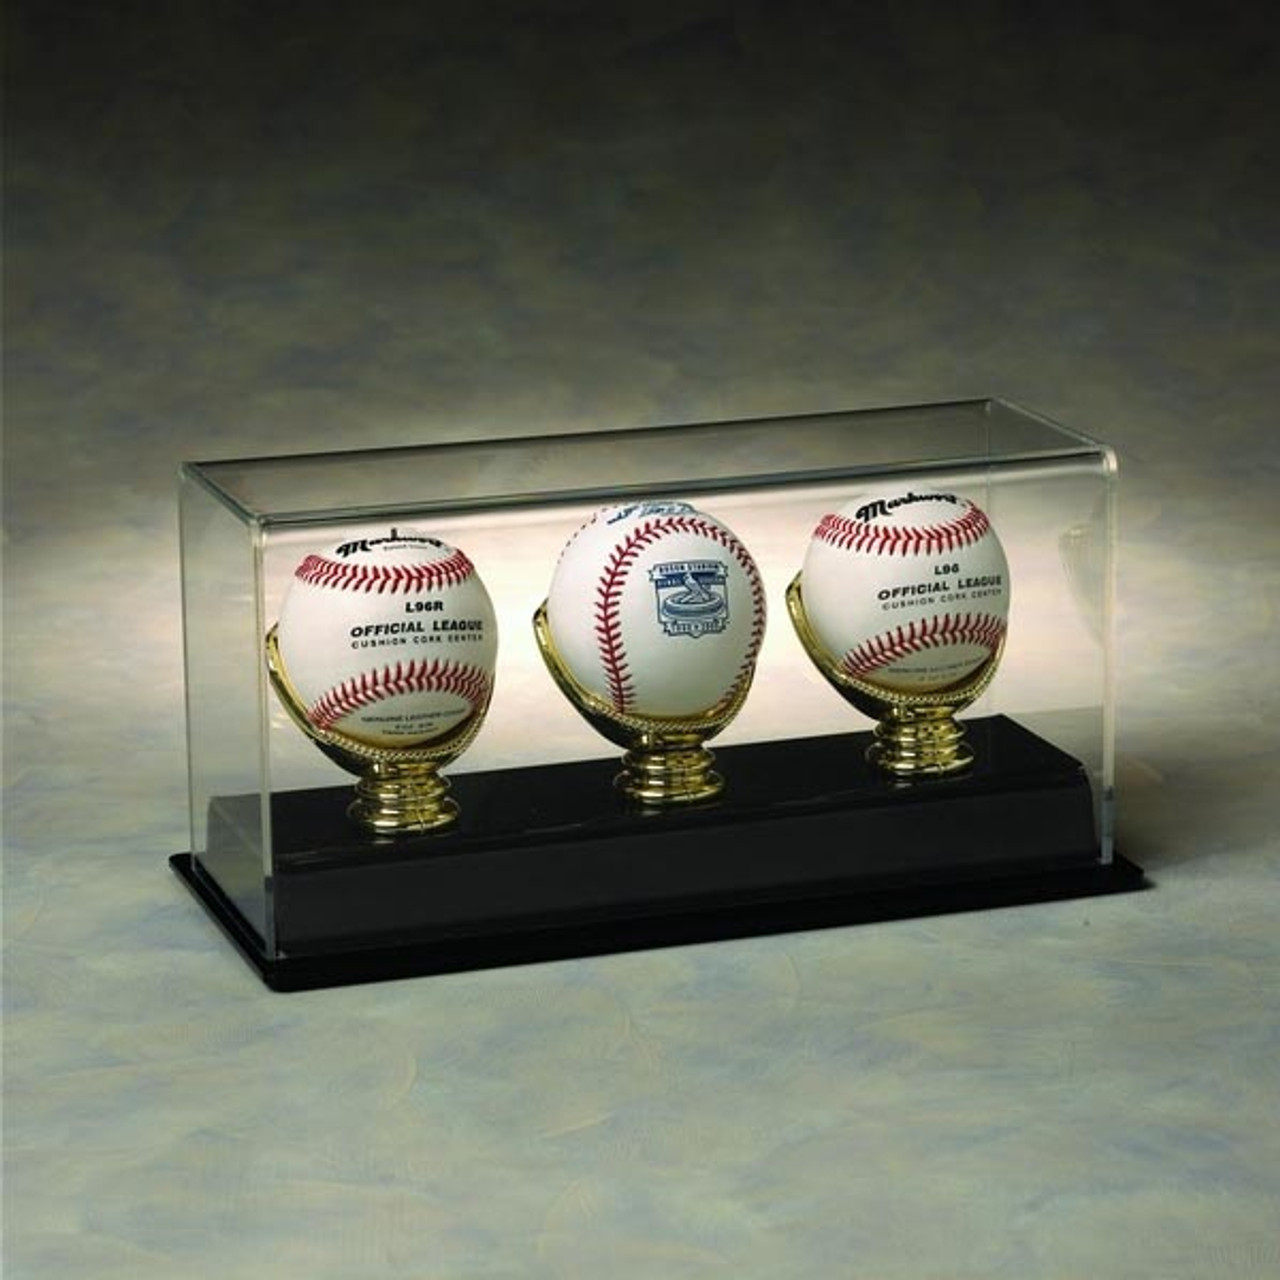 3 Baseball Display Case With Golden Glove Ball Holders Nikco